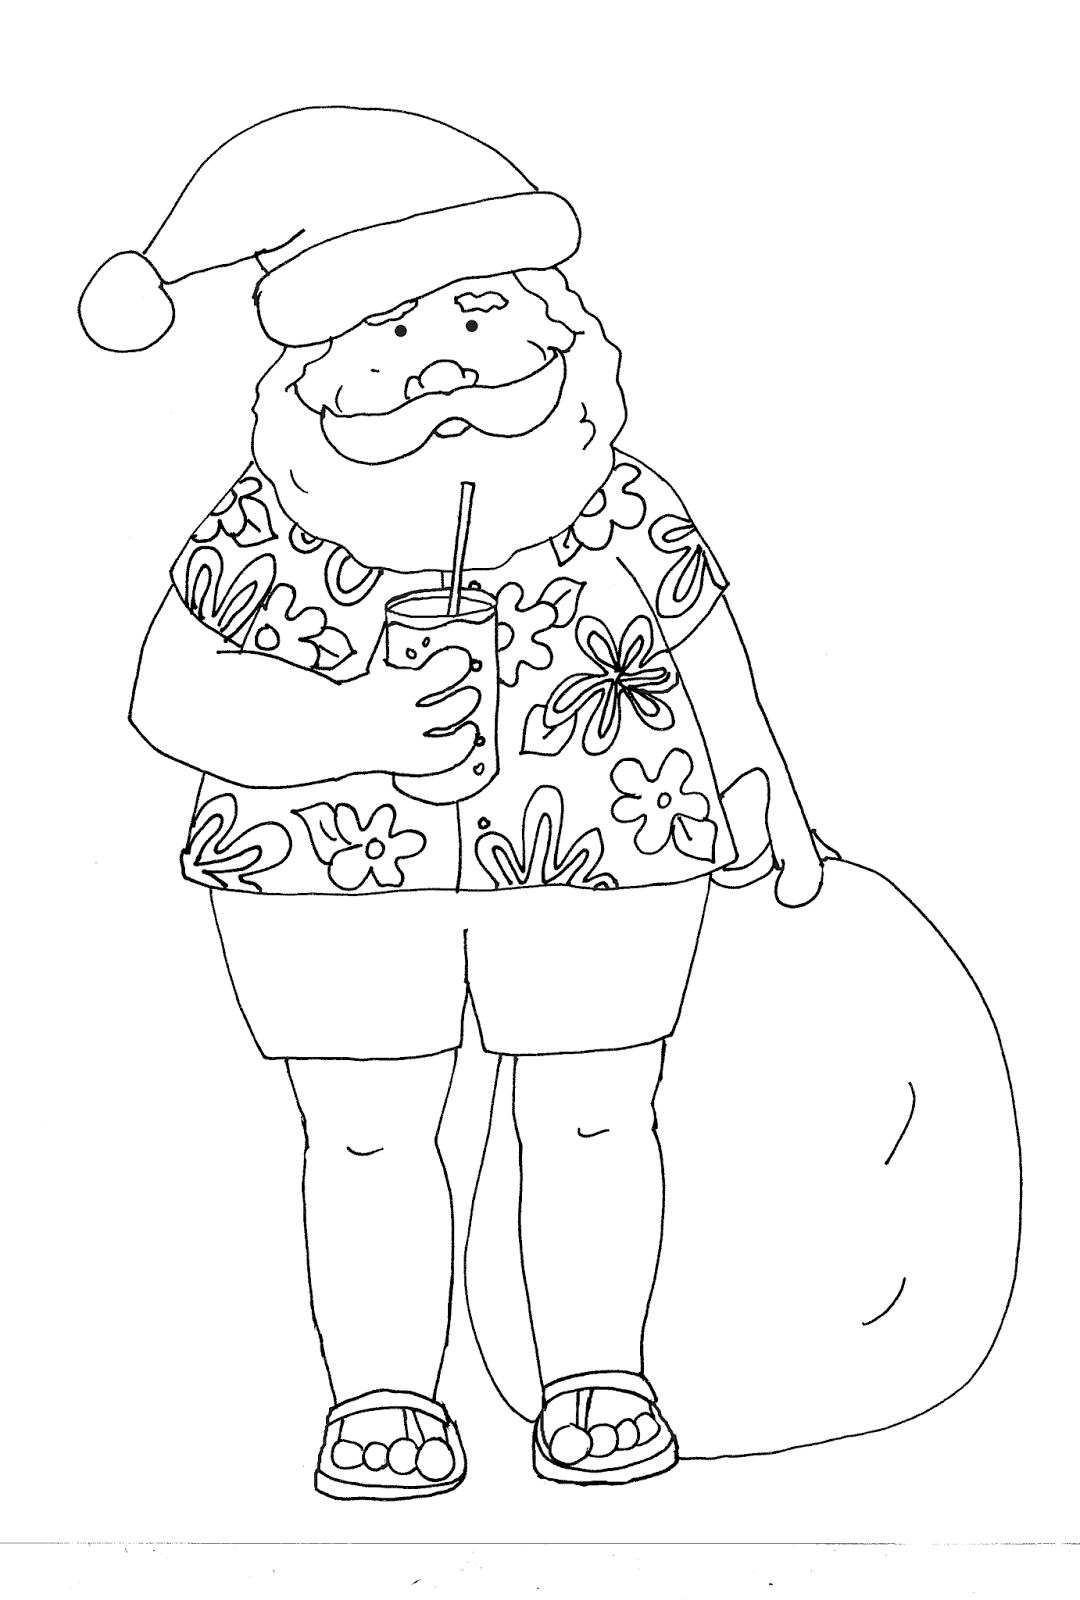 Free Dearie Dolls Digi Stamps Warm Weather Santa Digi Stamps Watercolor Christmas Cards Christmas Coloring Pages